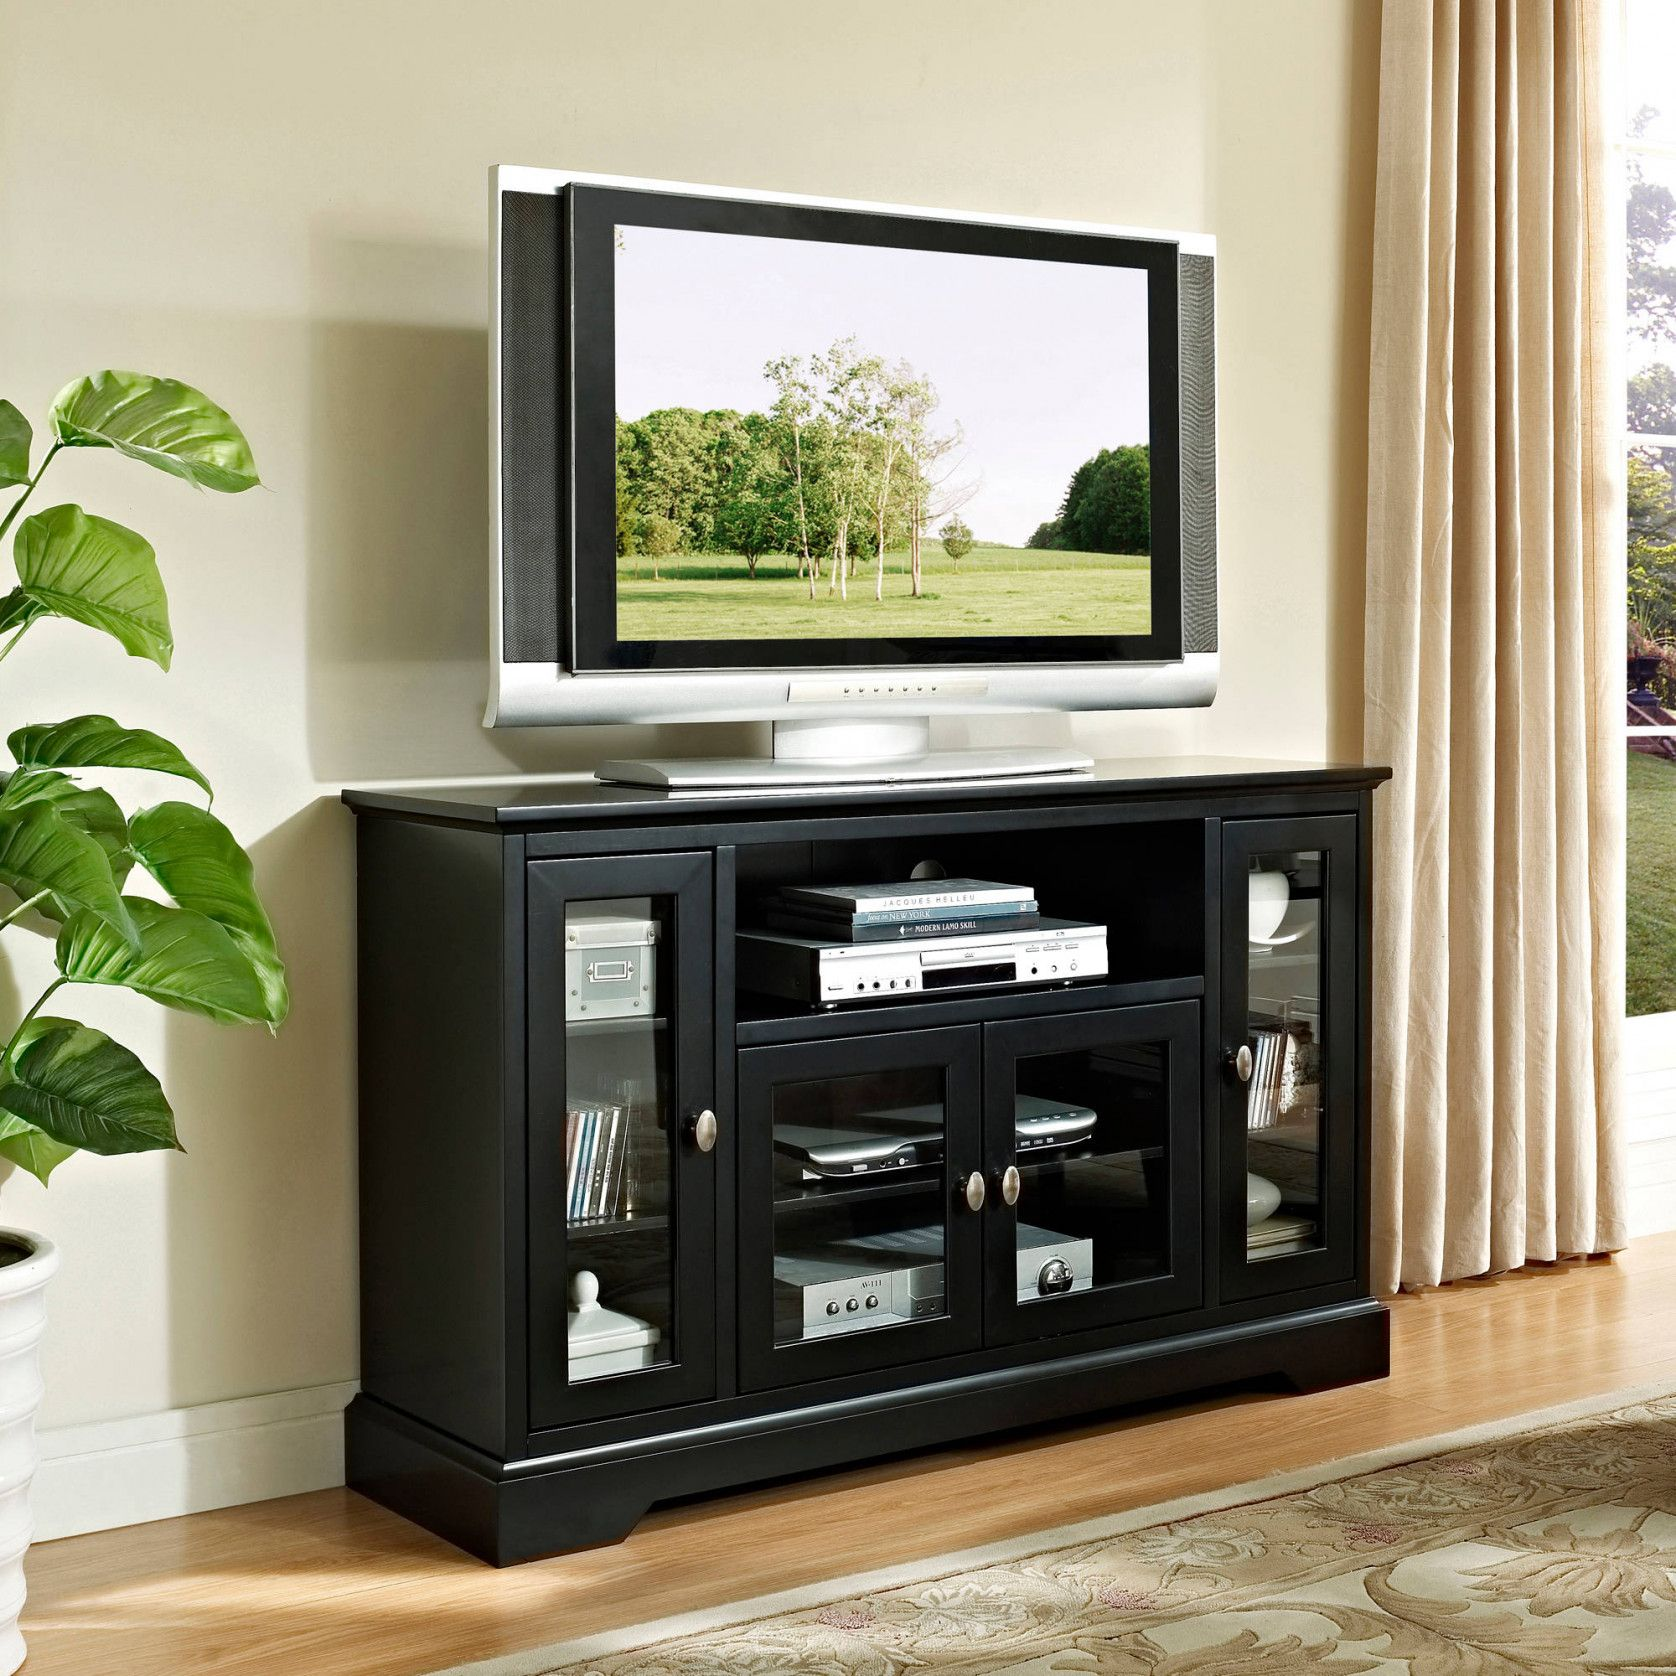 50+ Tv Console Cabinets For Flat Screen Tv   Kitchen Cabinet Inserts Ideas  Check More